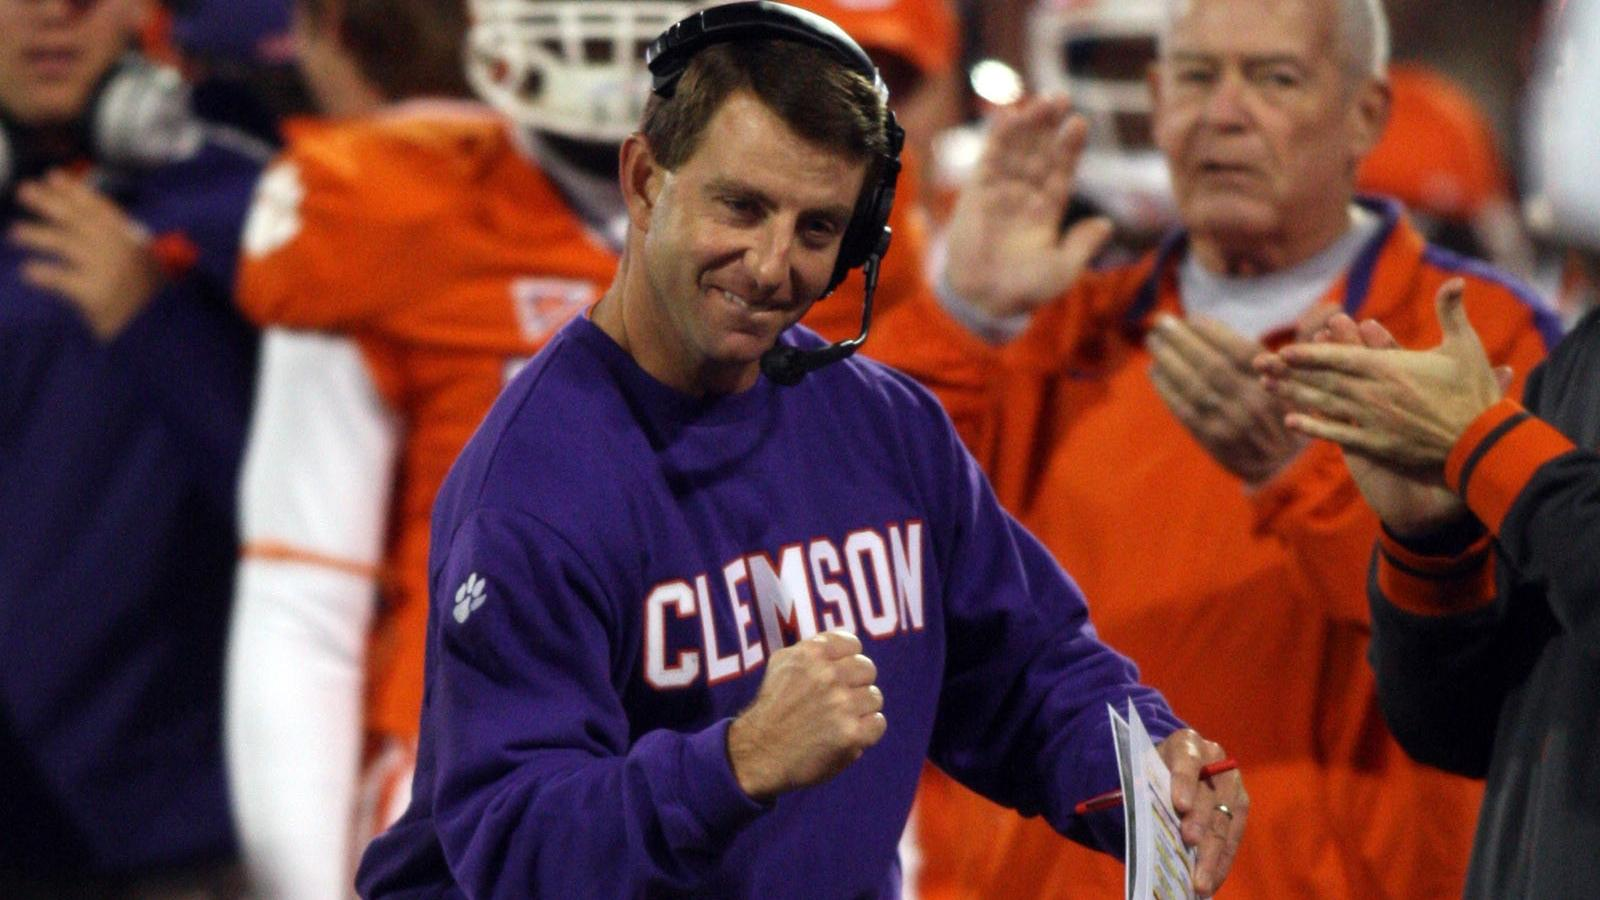 Vote for Coach Swinney for 2012 Liberty Mutual Coach of the Year